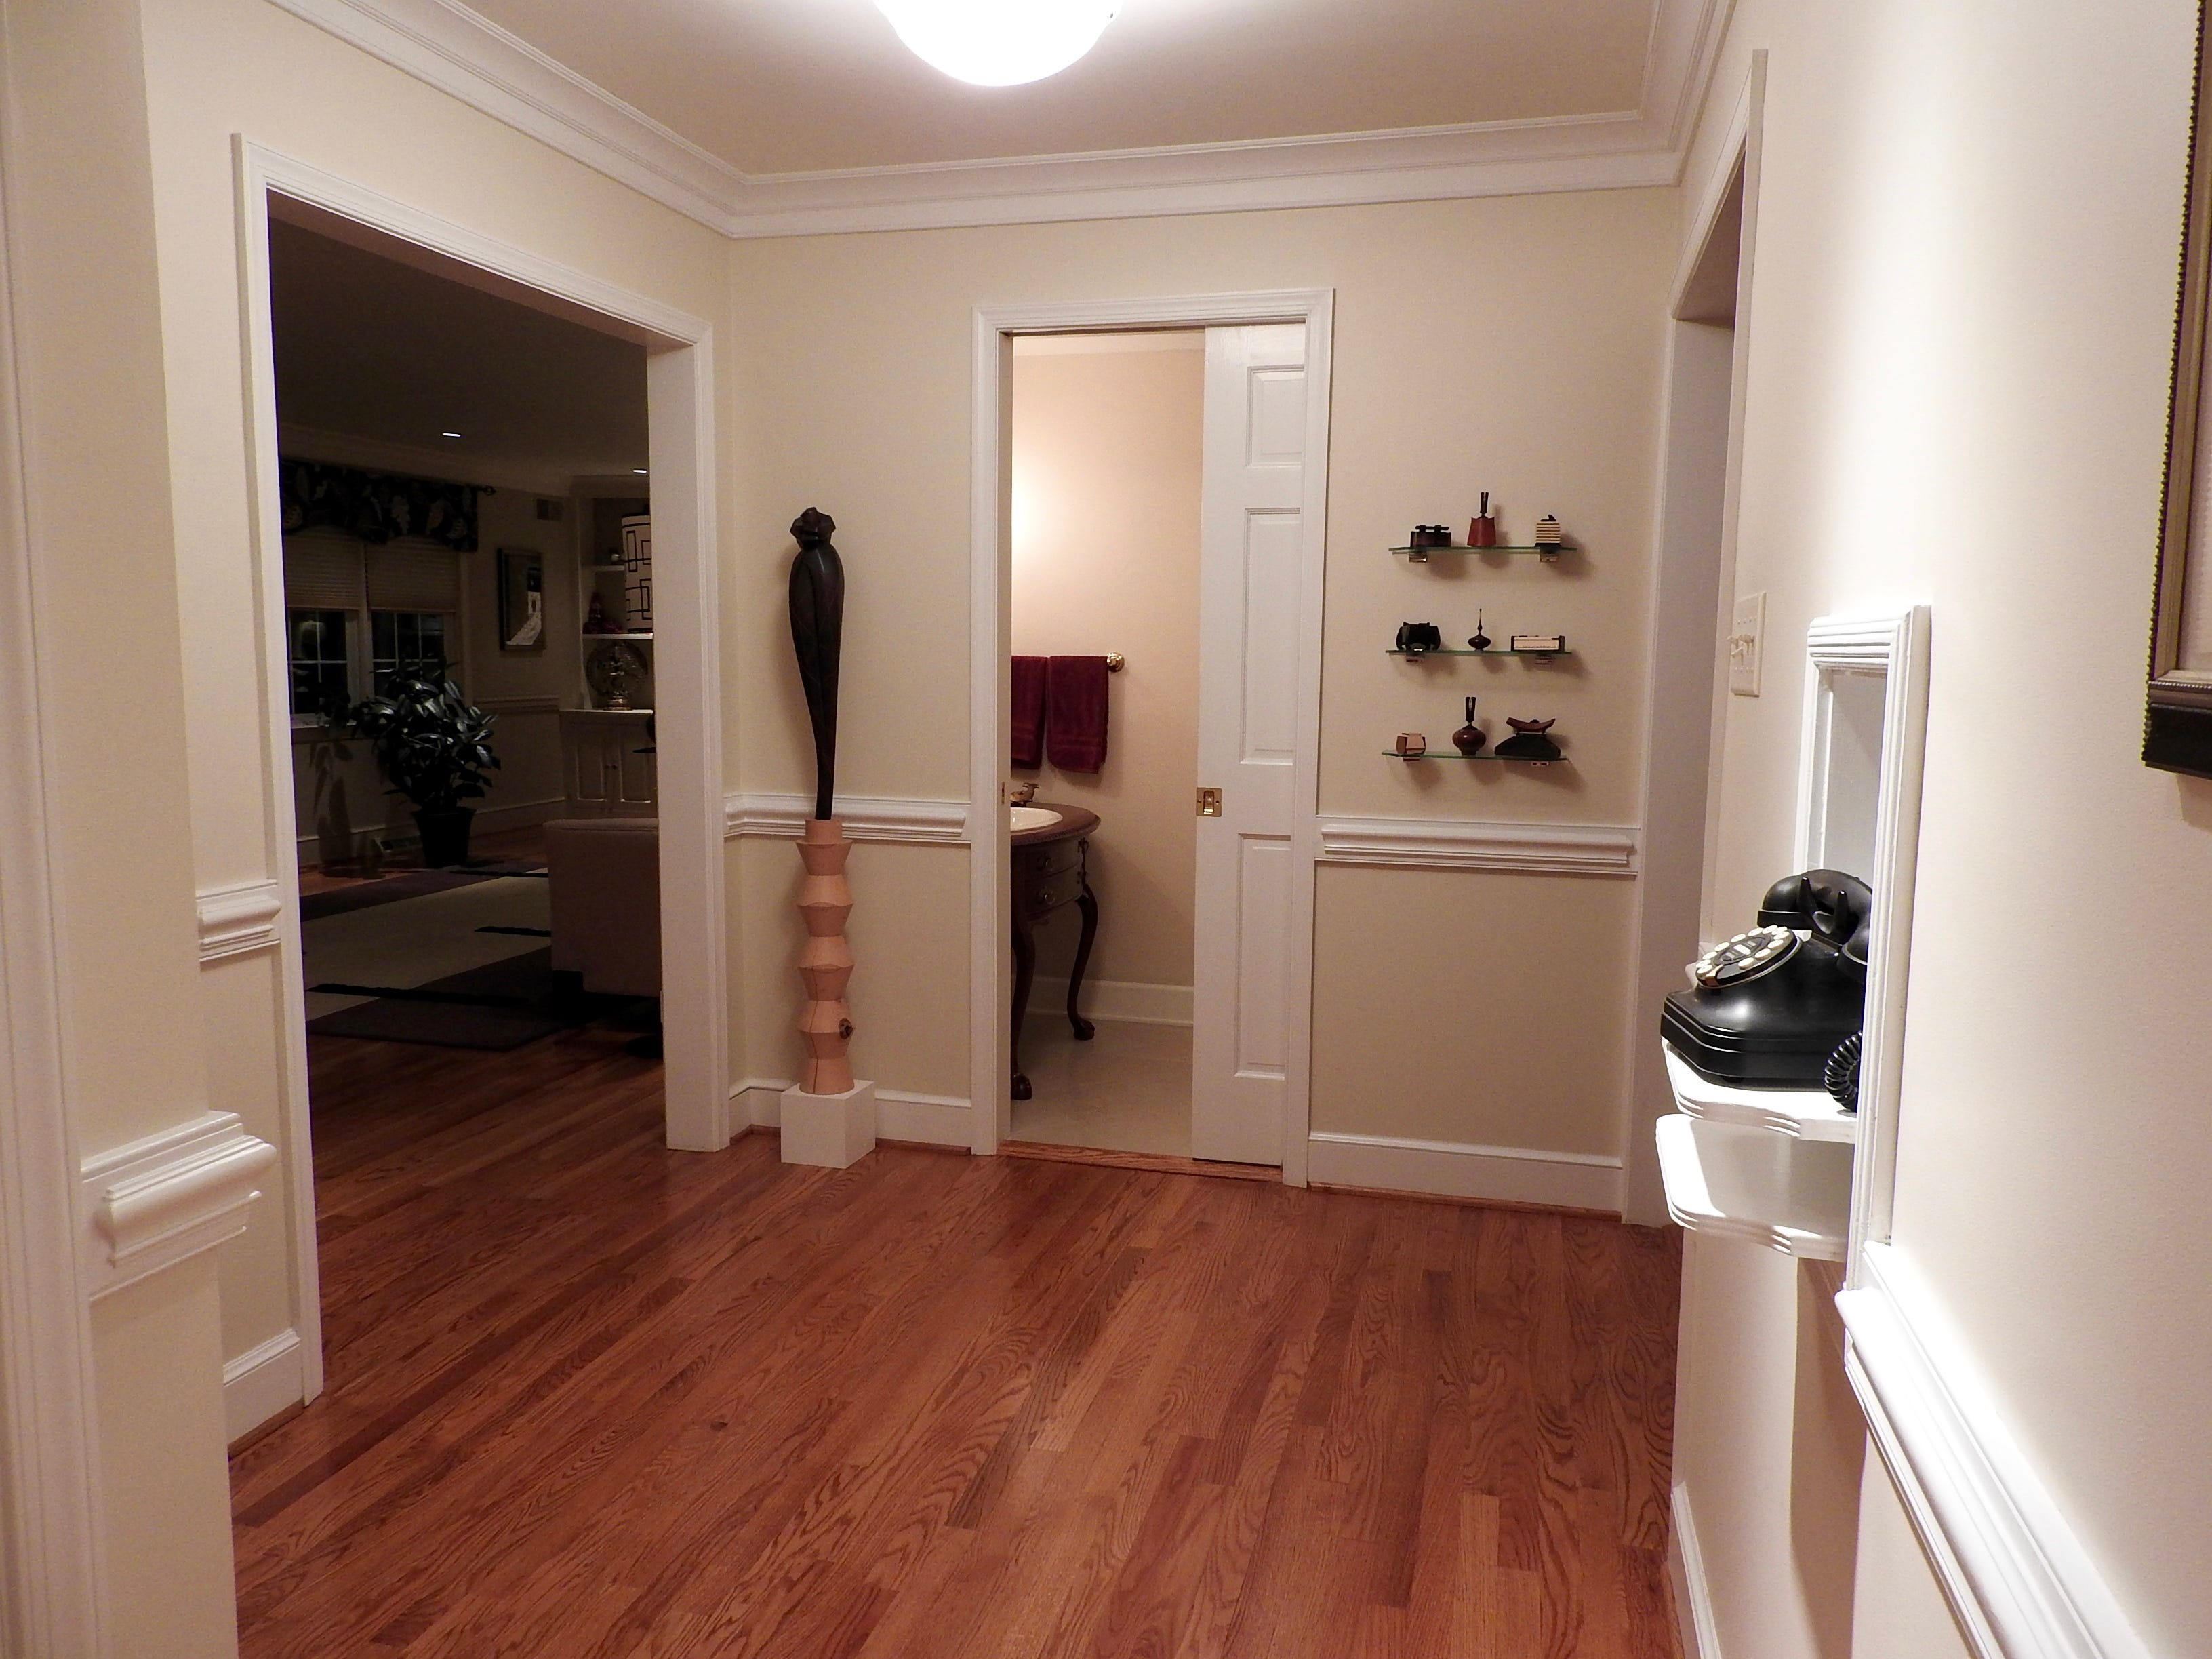 All of the oak hardwood floors have been refinished throughout 103 Edgewood Road in Alapocas.